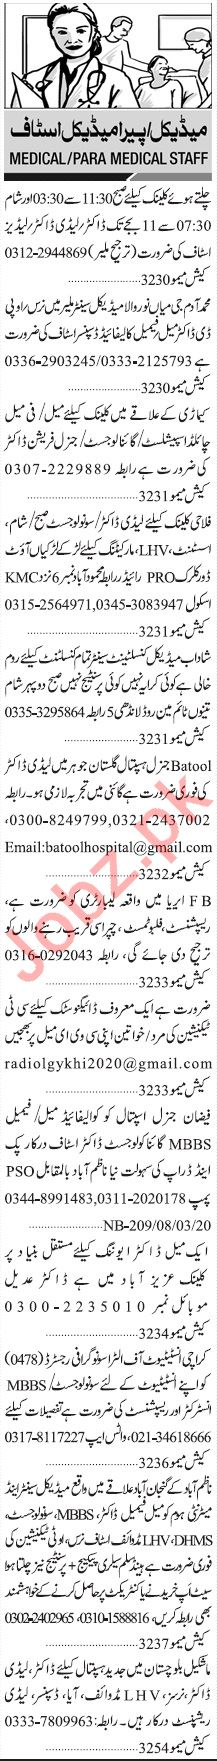 Jang Sunday Classified Ads 8th March 2020 for Medical Staff